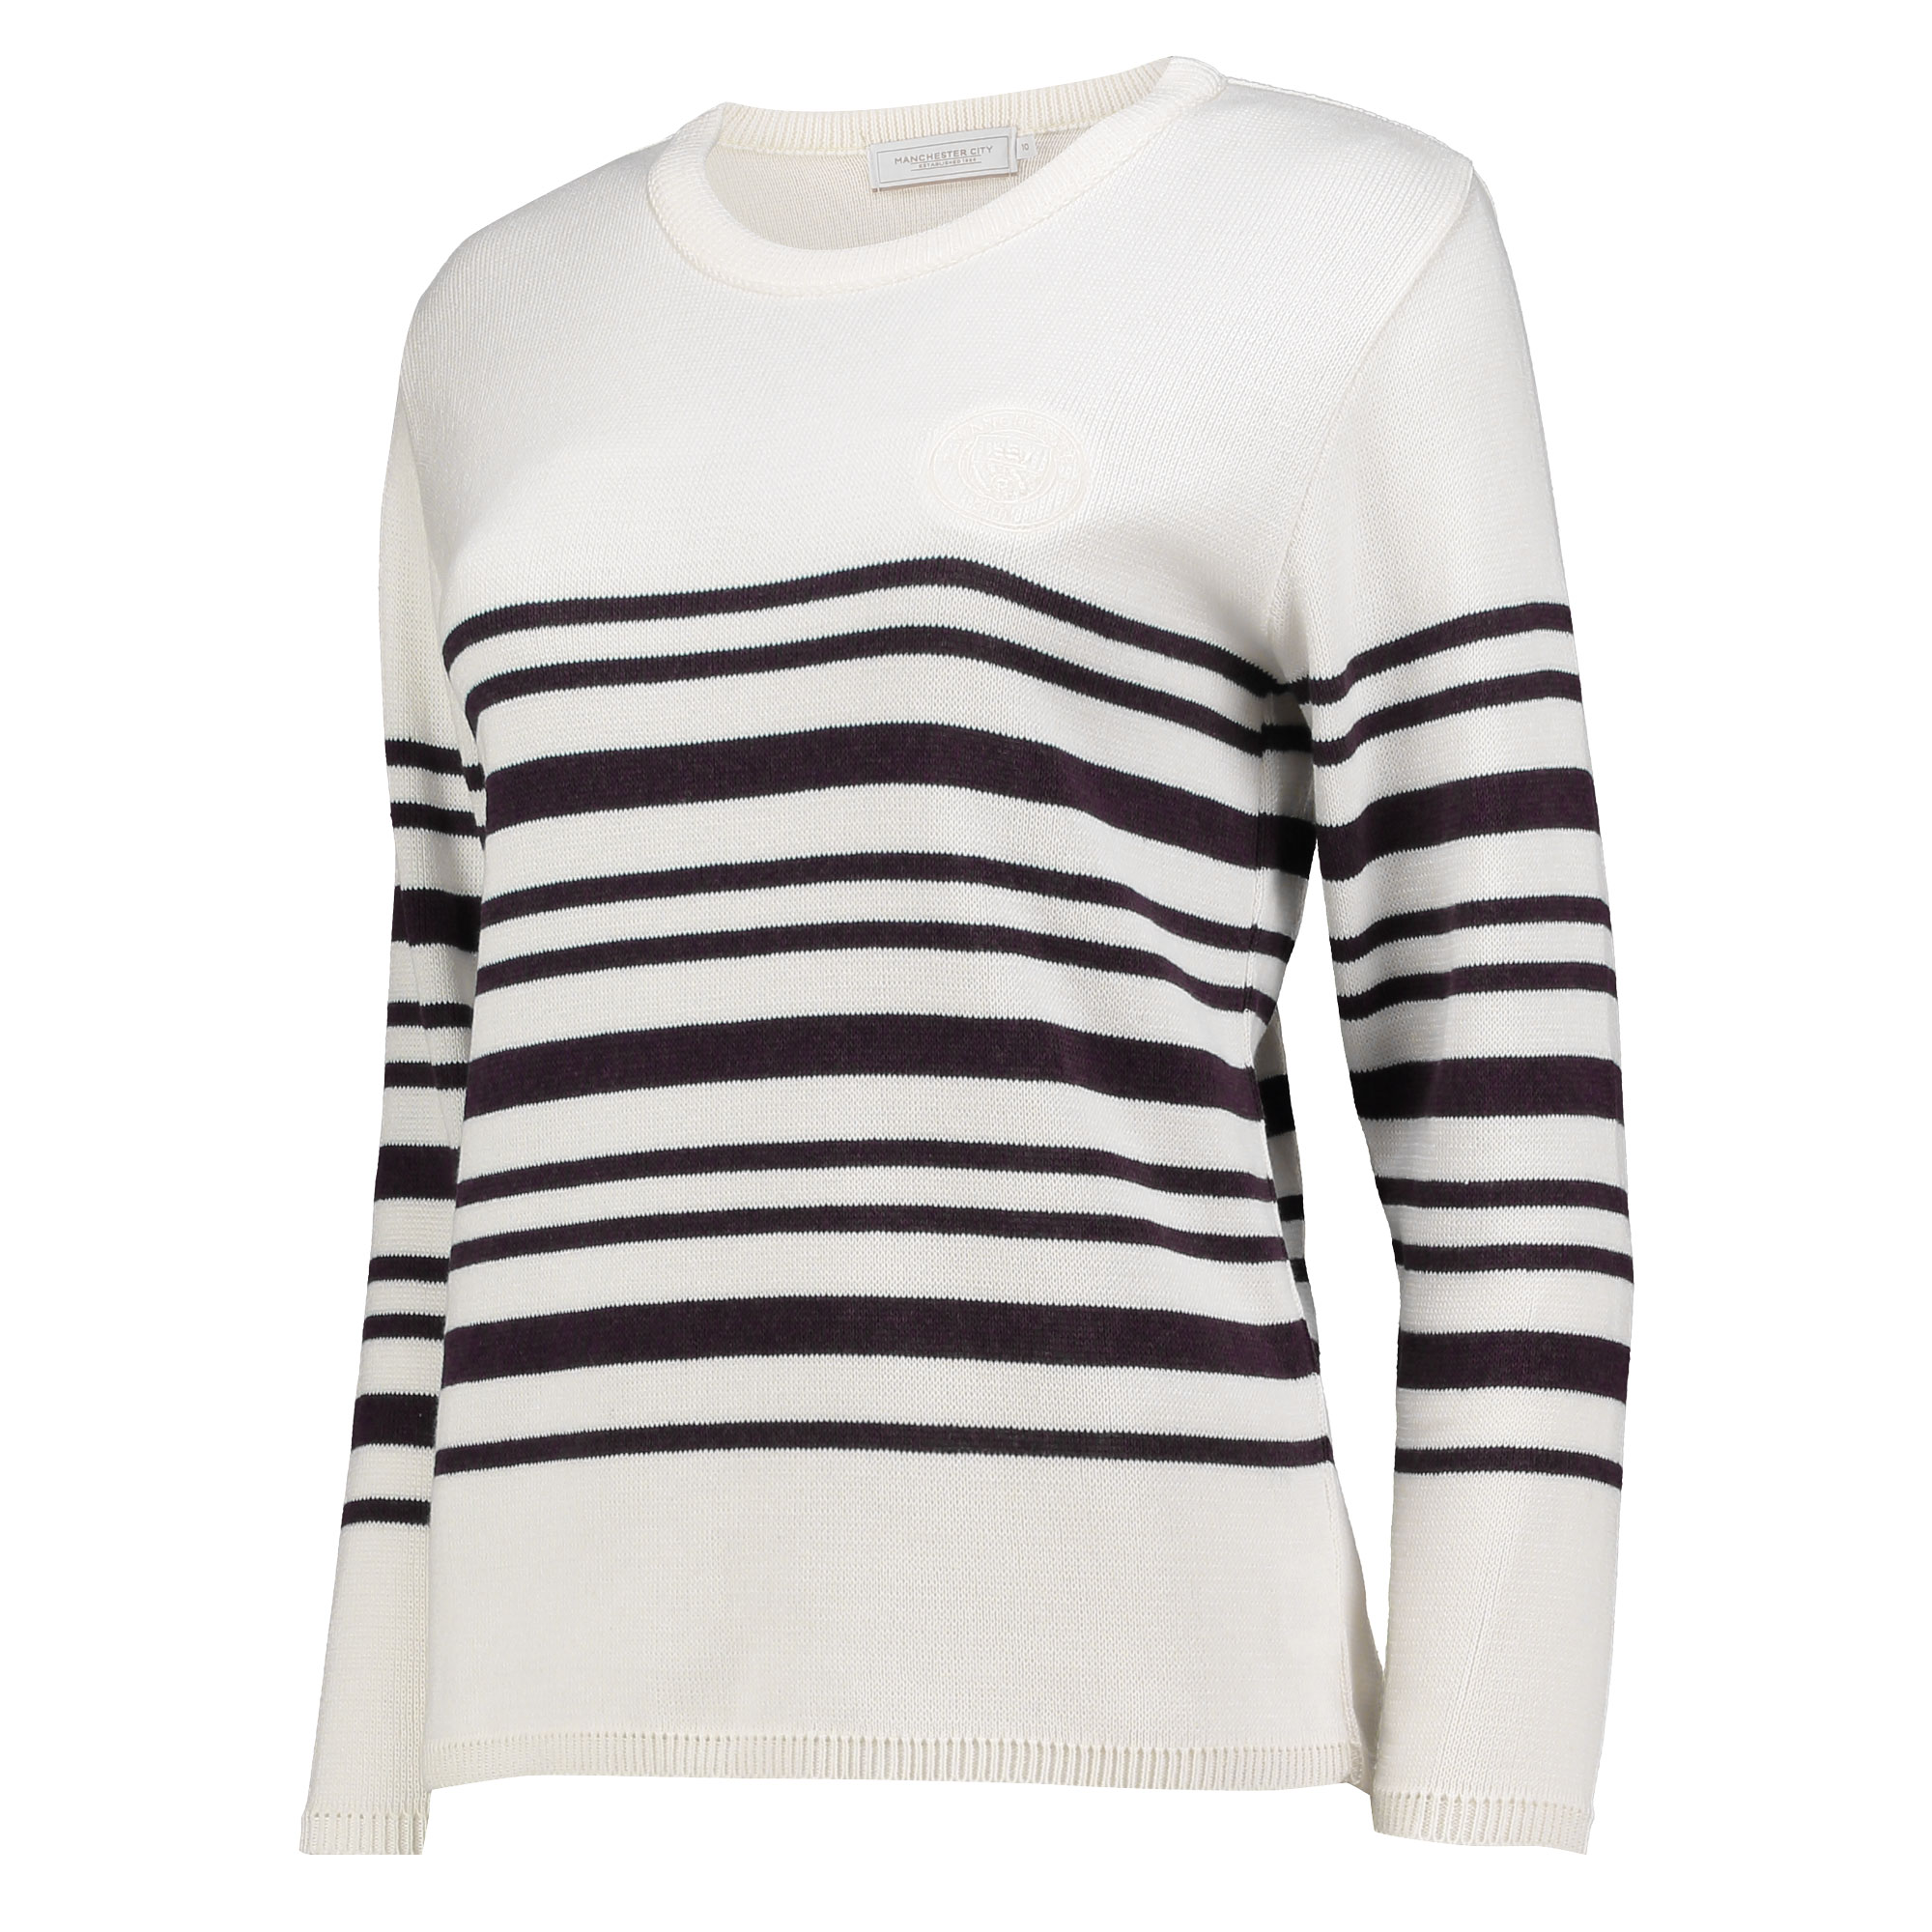 Manchester City Luxe Breton Top - White - Womens